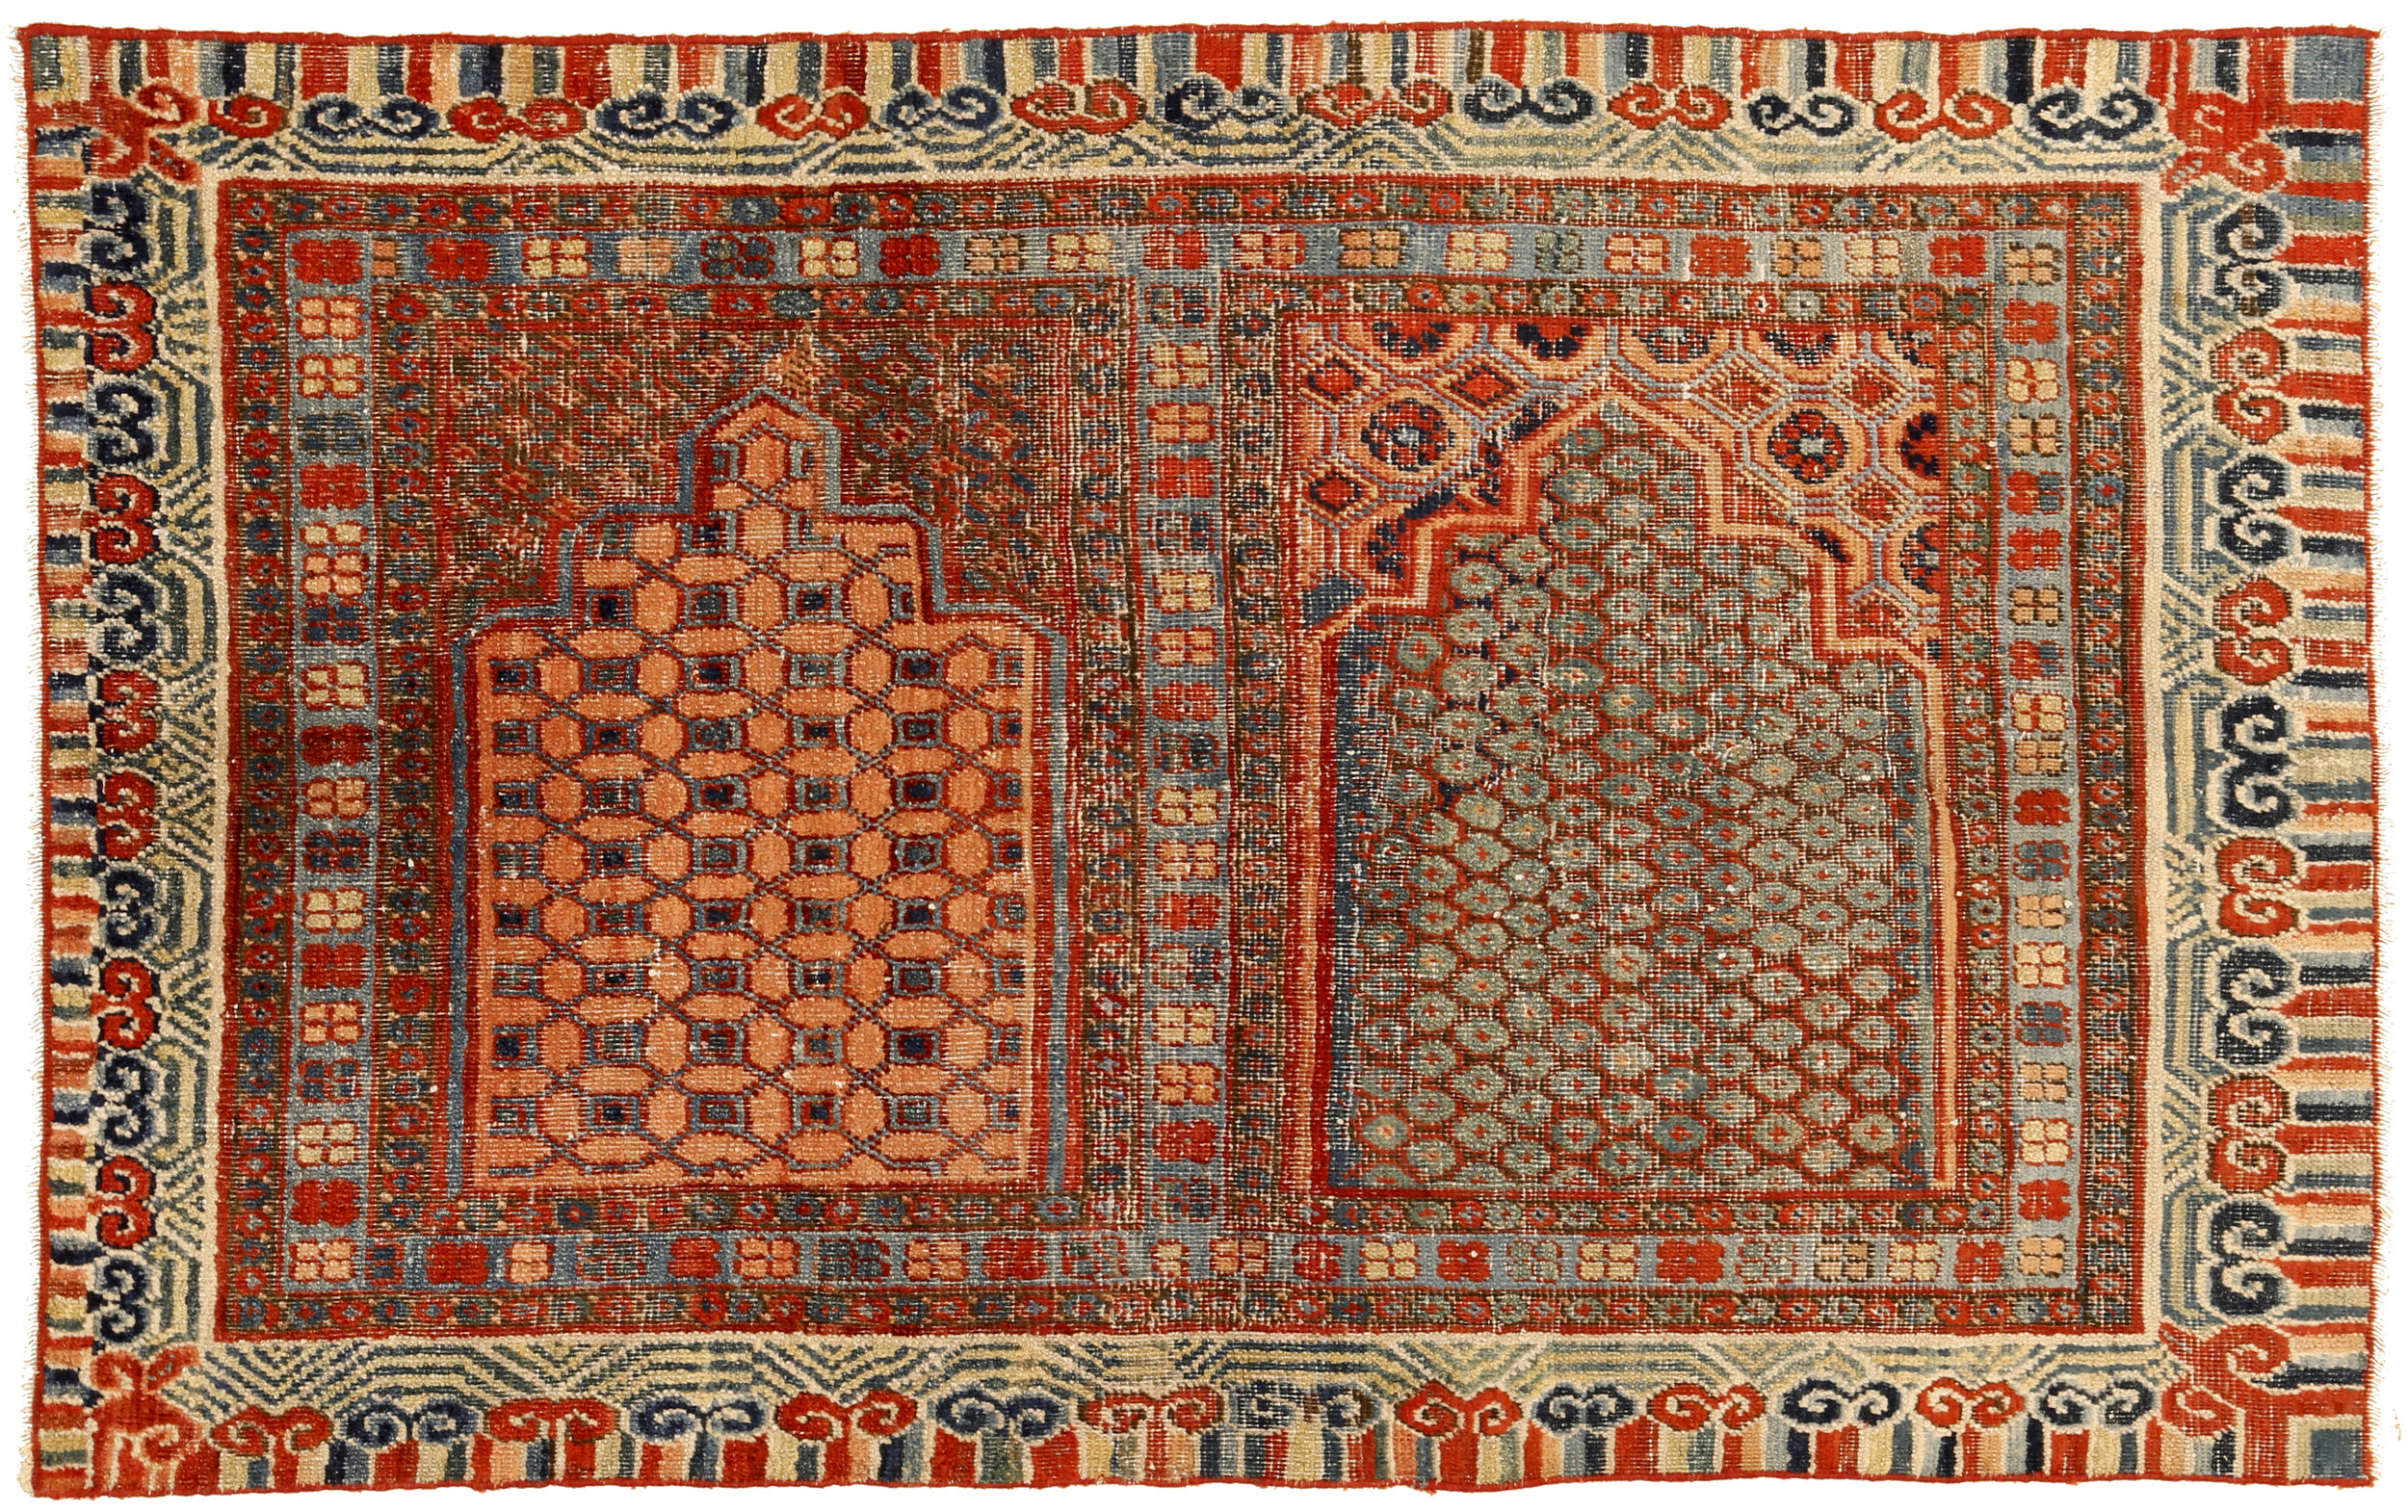 Rug with two niches